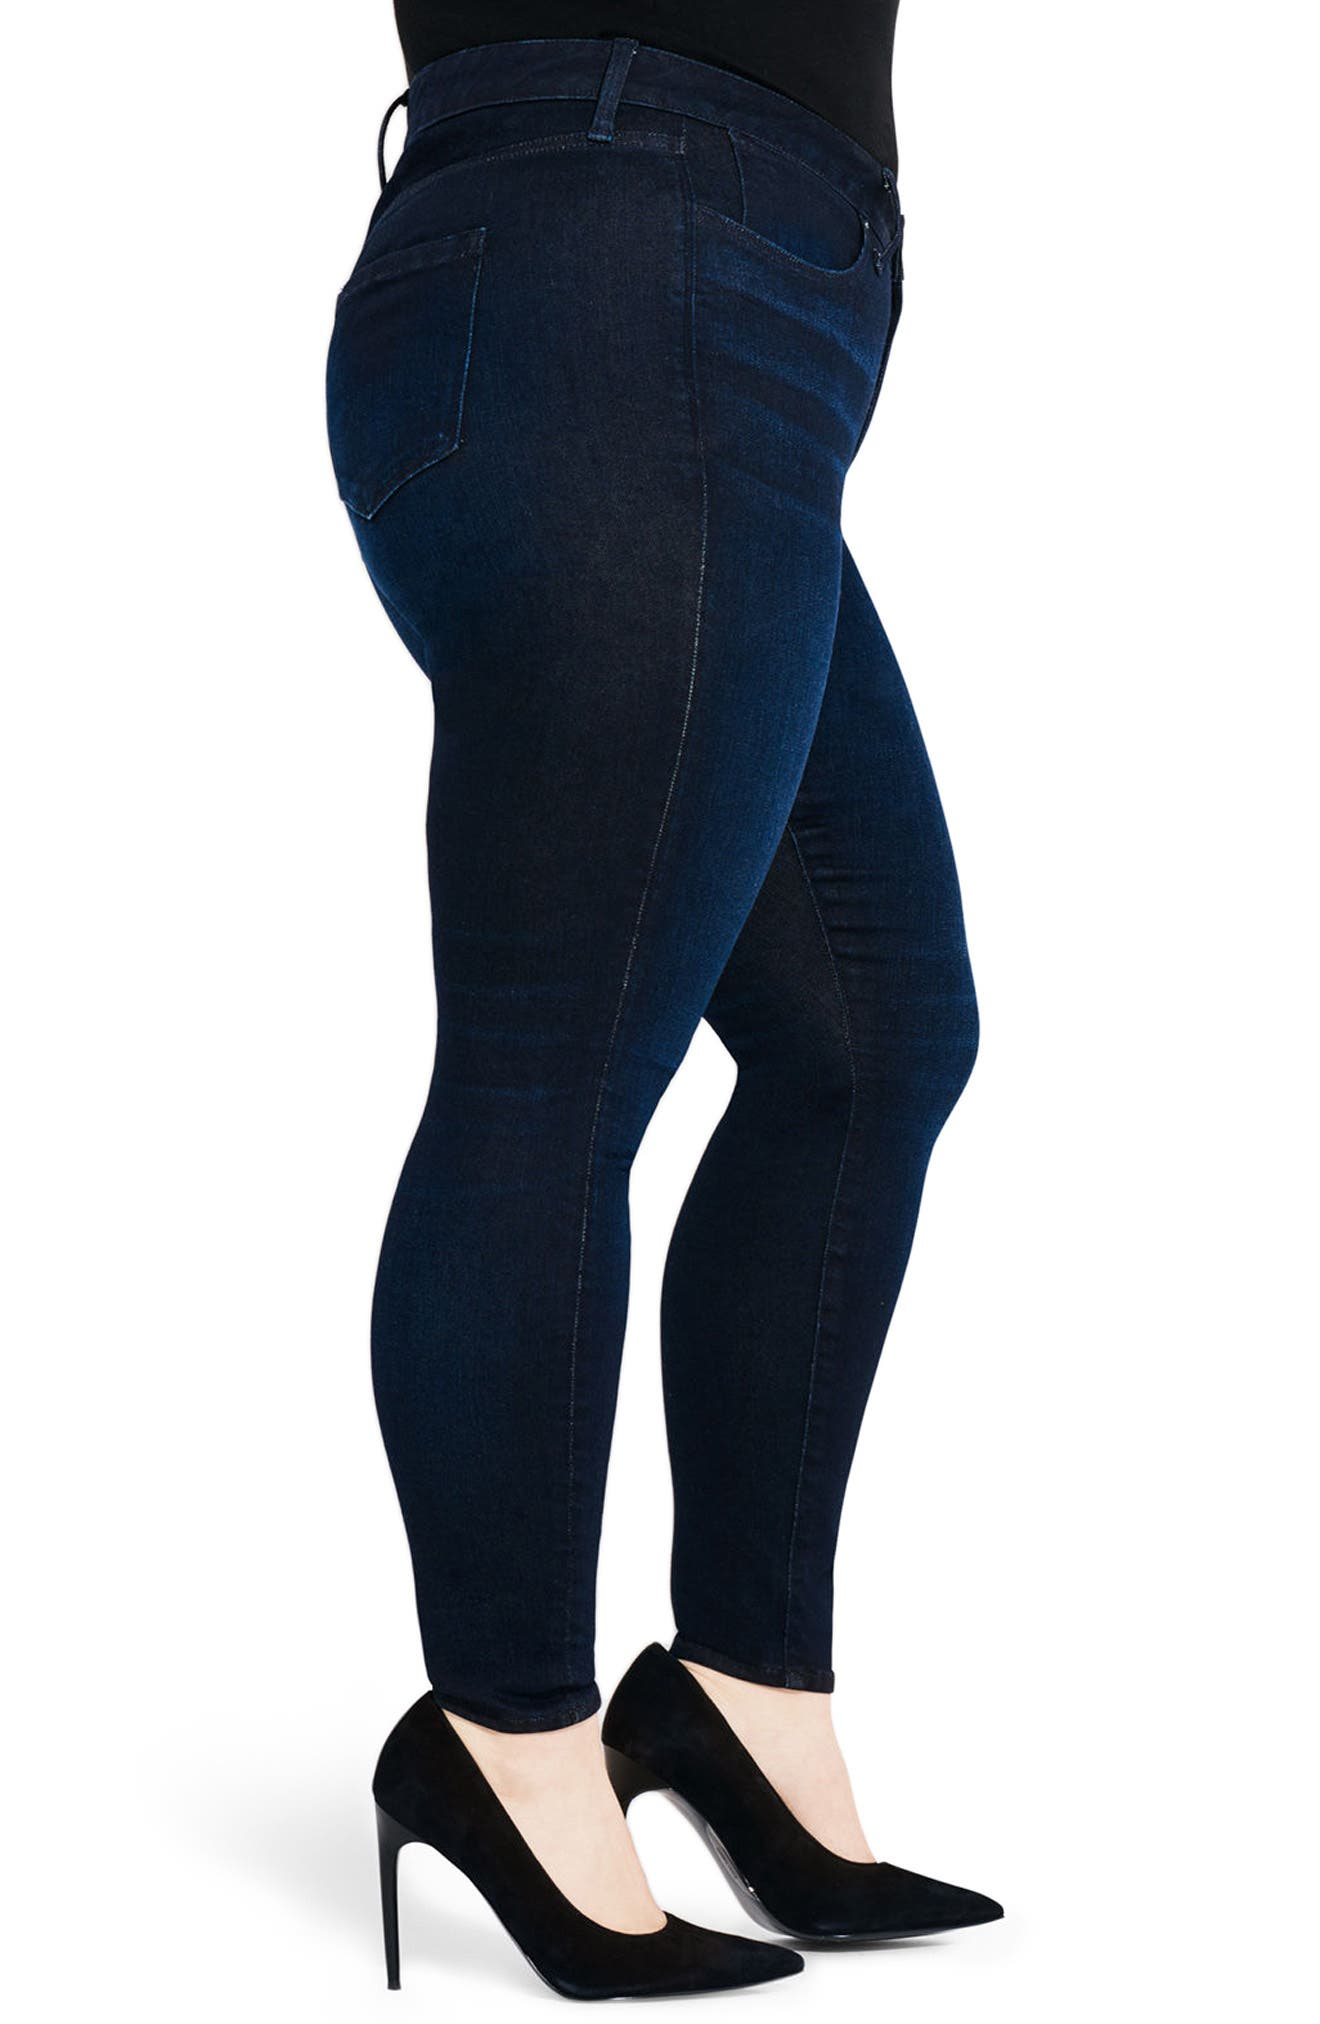 Alternate Image 3  - AYR The One Love High Waist Skinny Jeans (Jac's Jean) (Plus Size)